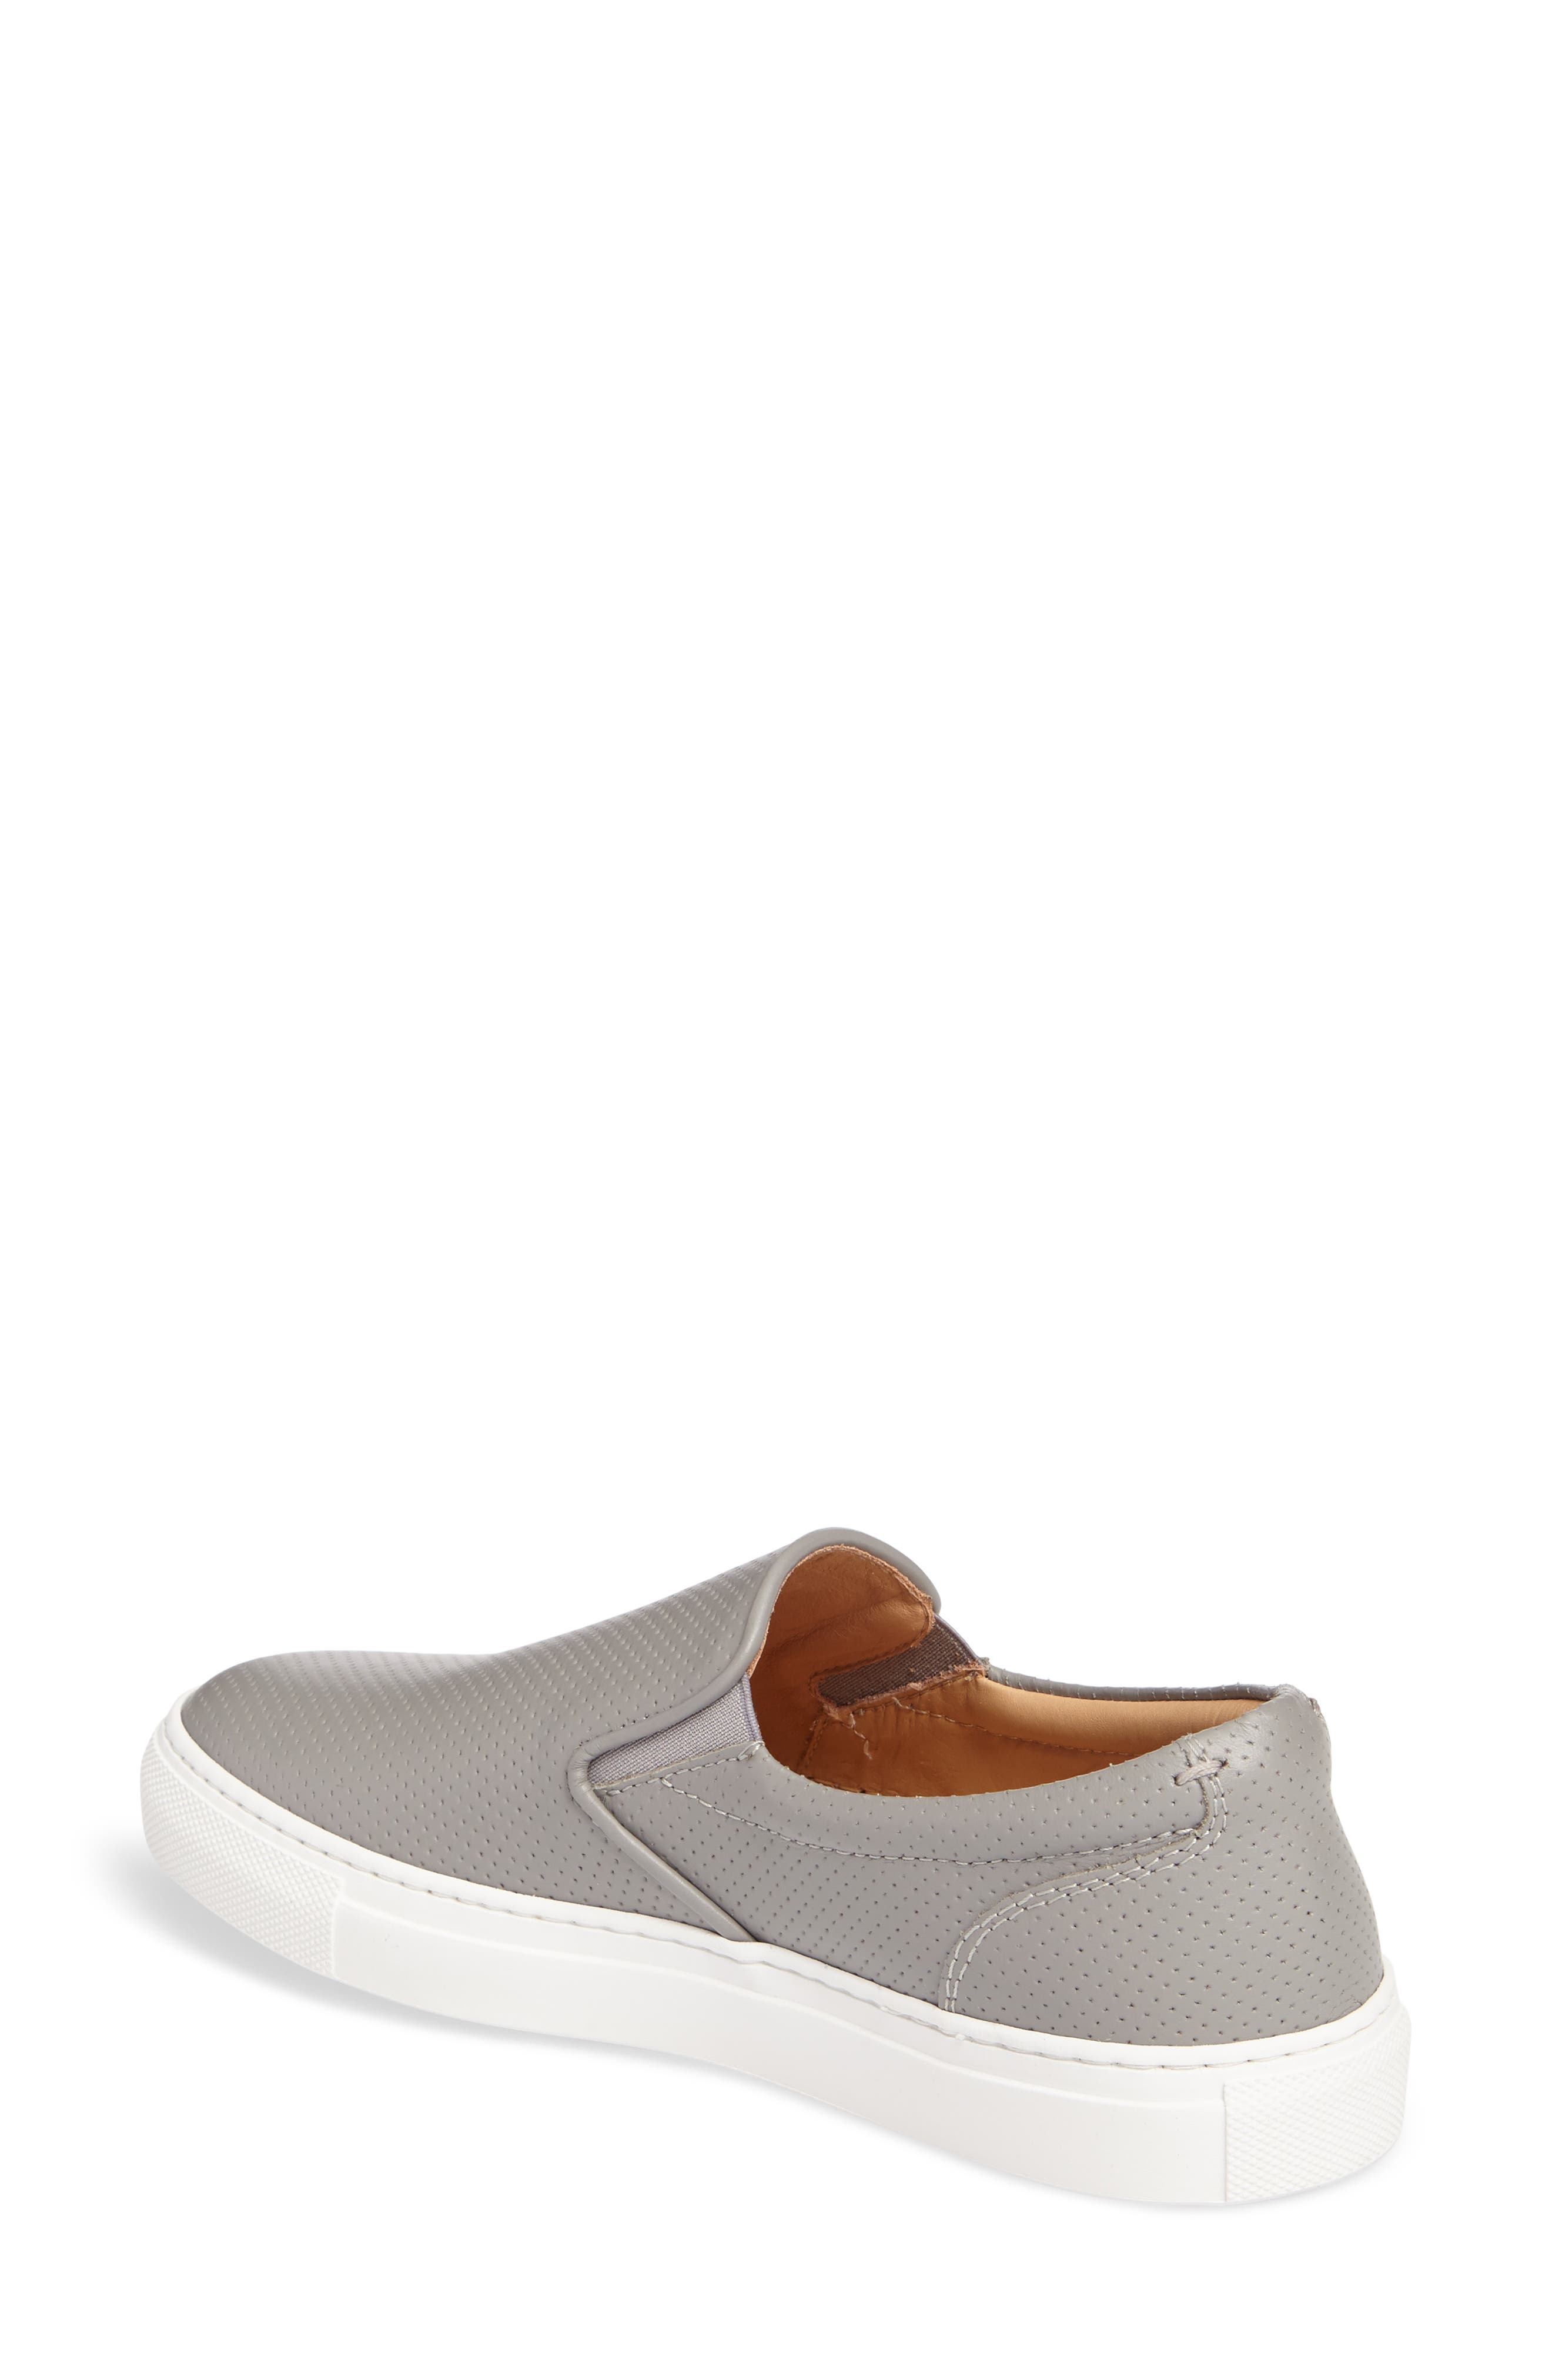 Wooster Slip-On Sneaker,                             Alternate thumbnail 2, color,                             GREY PERFORATED